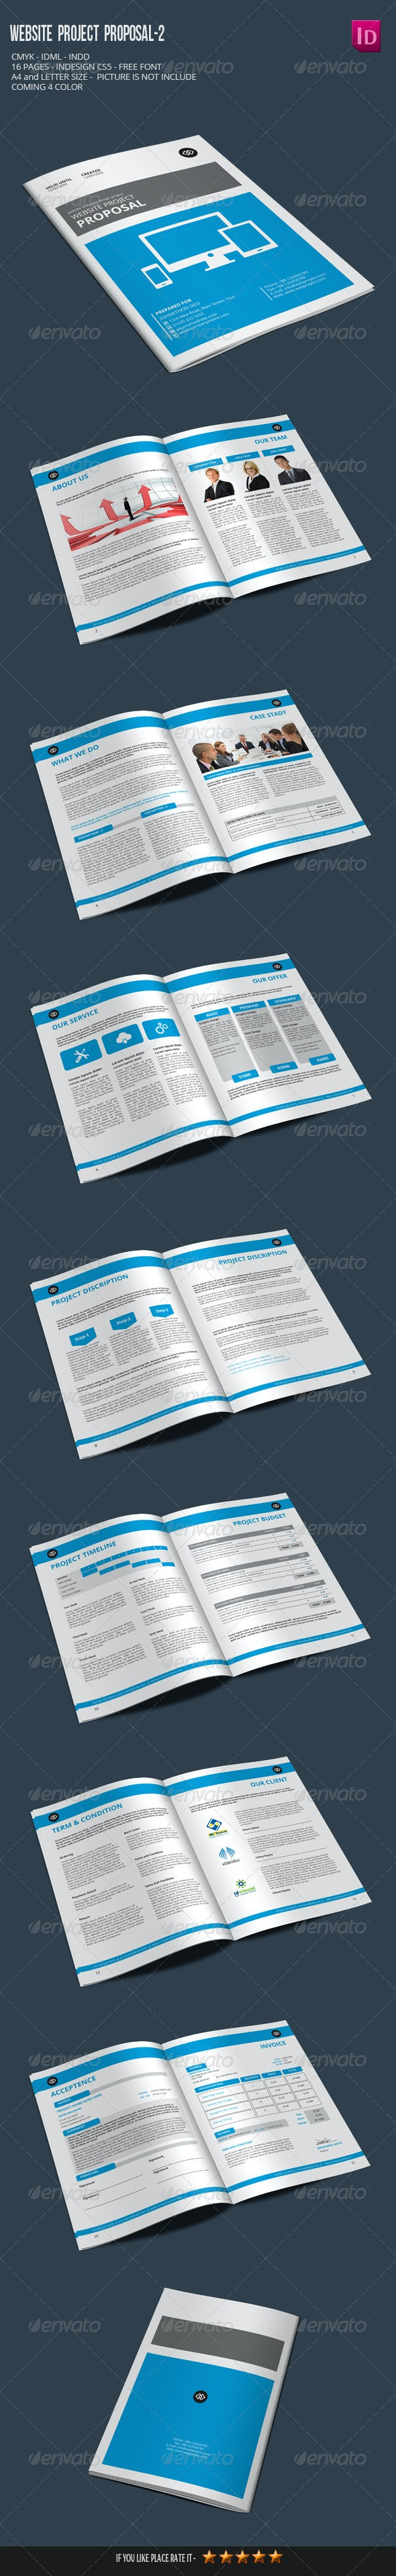 Website Project Proposal-2 - Proposals & Invoices Stationery